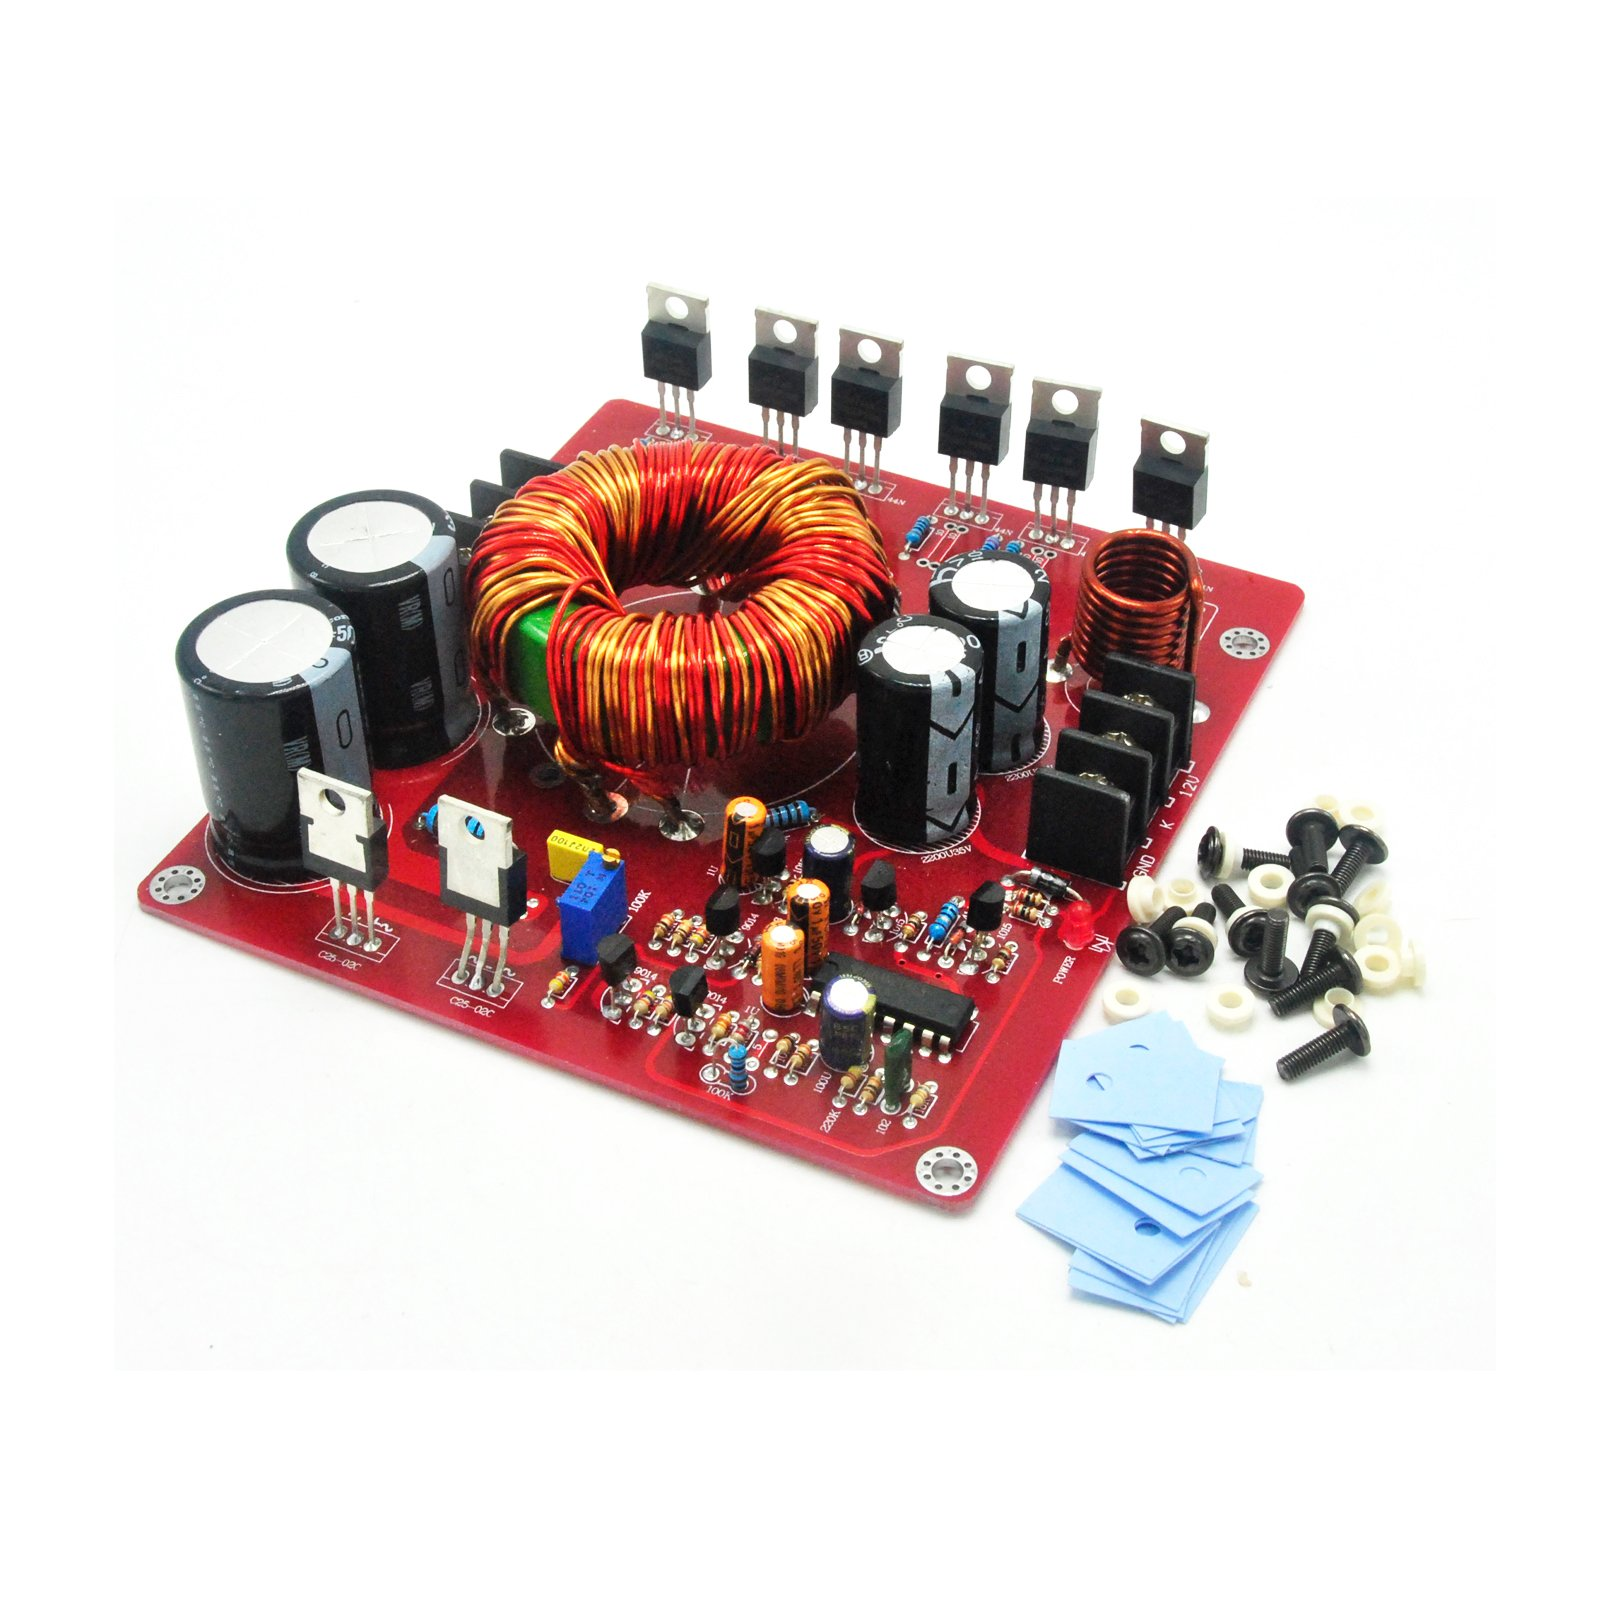 Boost Power Supply Board DC12V To Dual 32V For 350W HiFi Amplifier Car Amp by Jolooyo